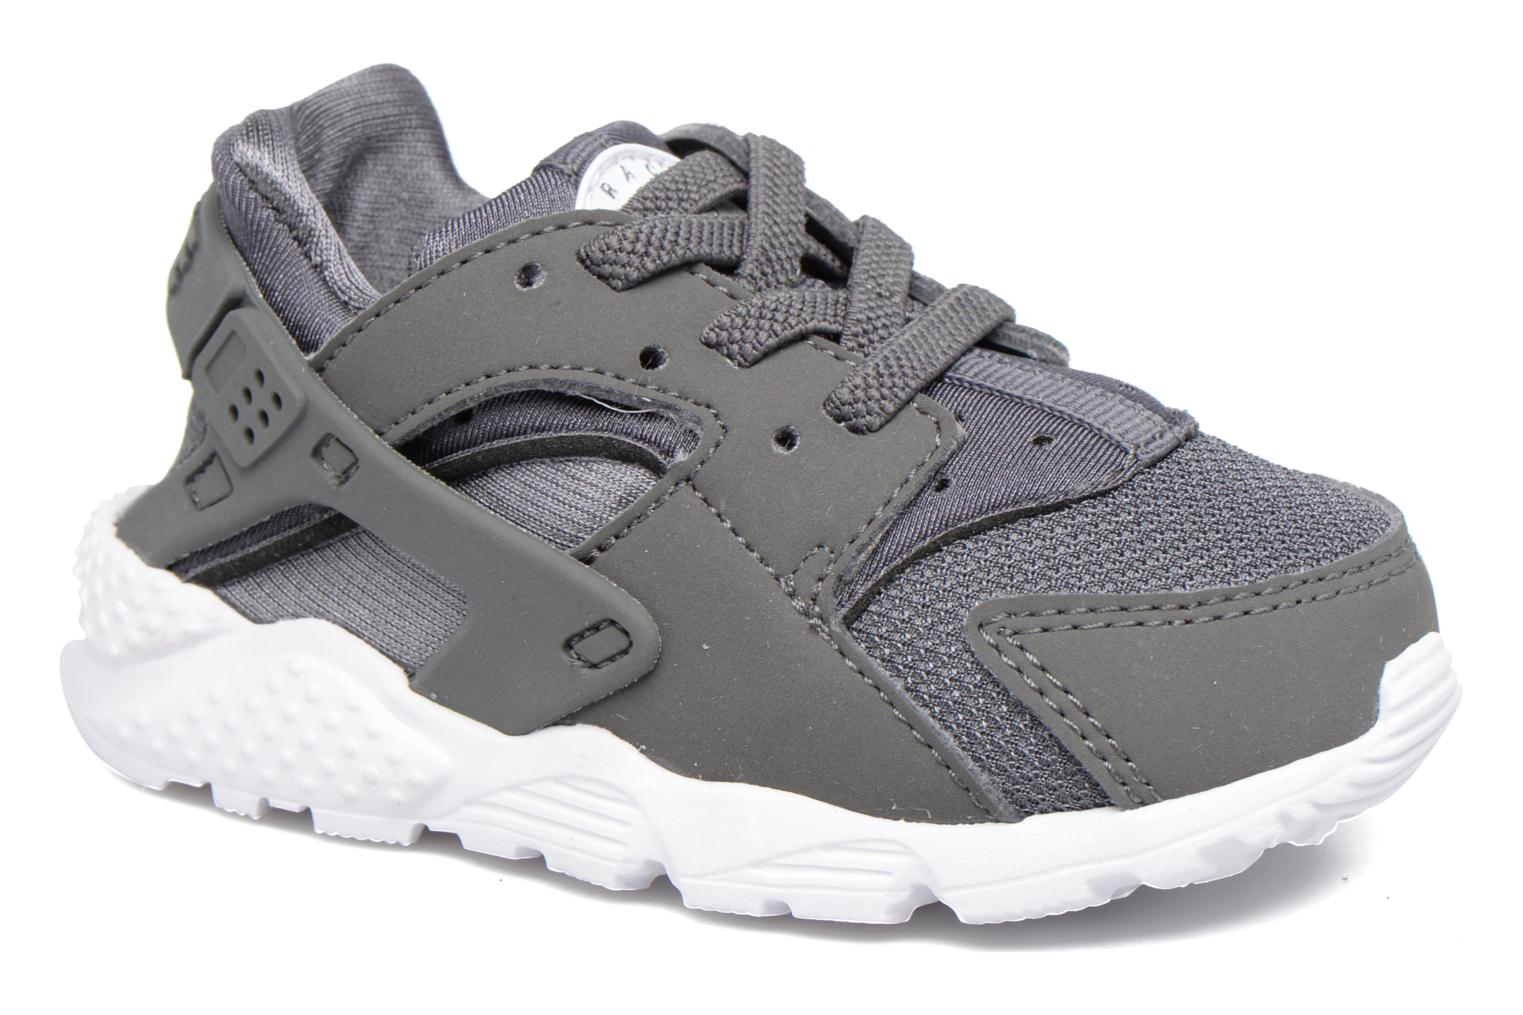 Nike Huarache Run (Td) Dark Grey/Dark Grey-White-Black